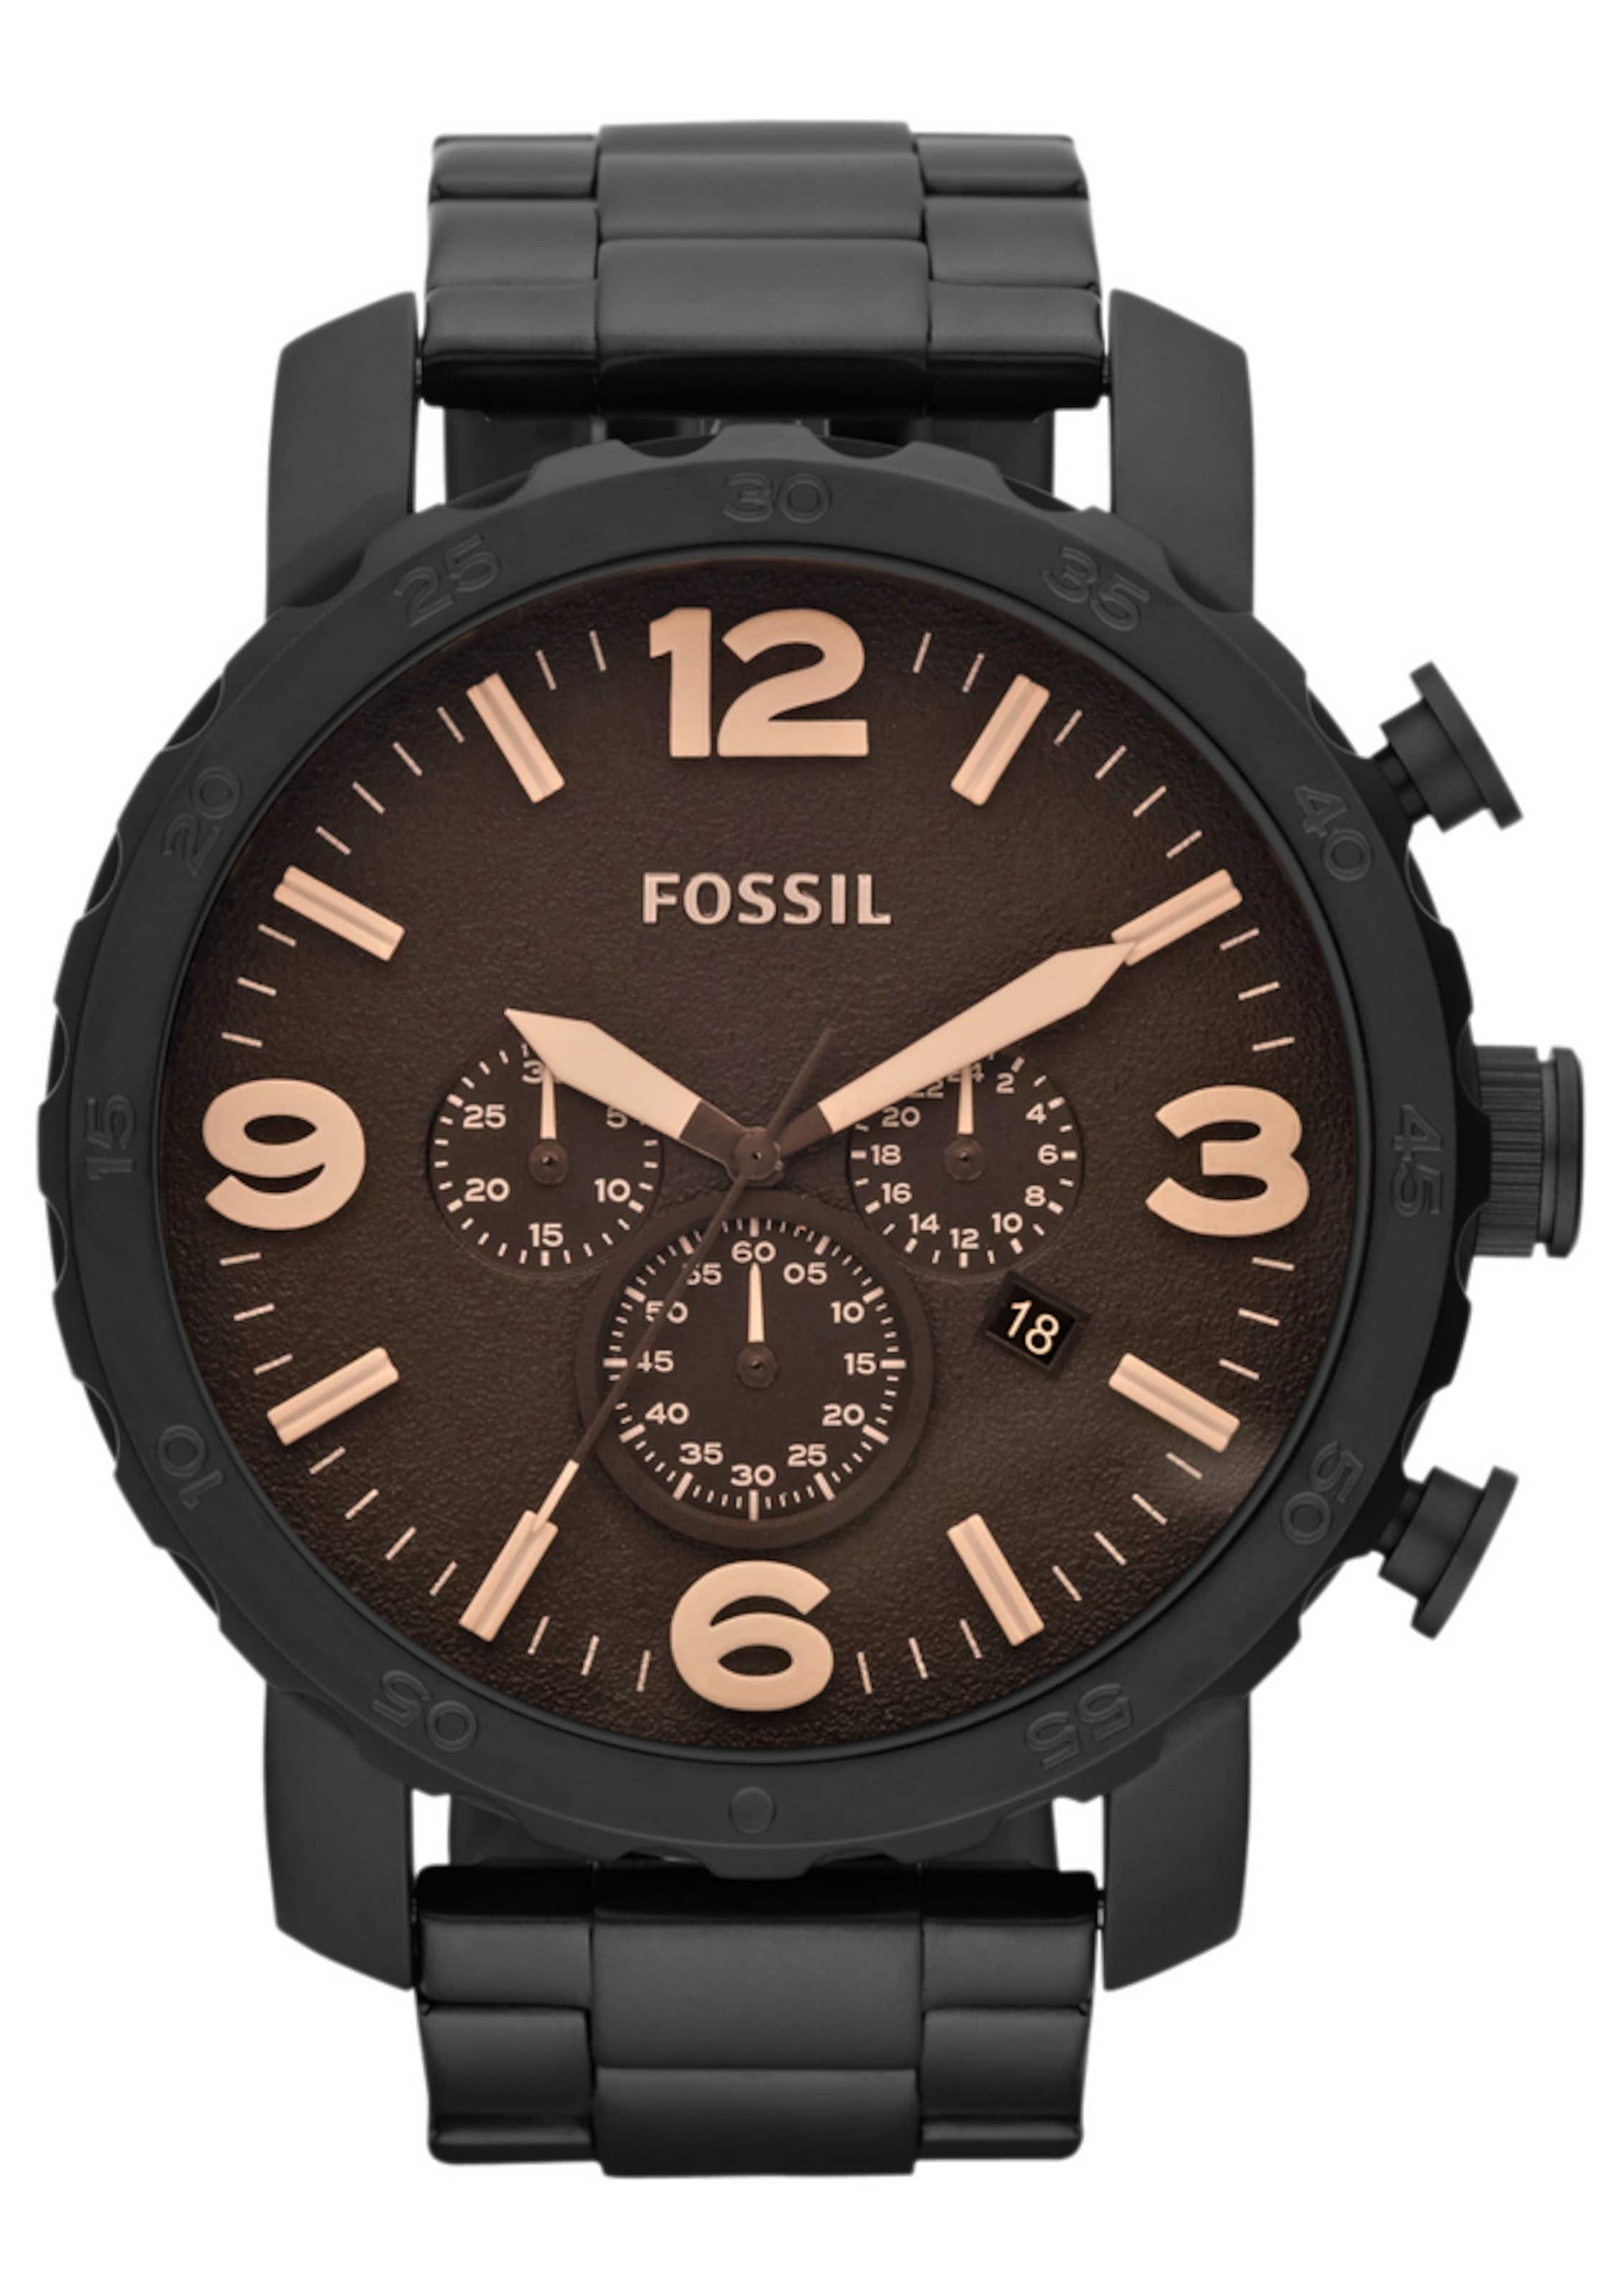 'nateJr1356' BraunSchwarz Fossil 'nateJr1356' In Chronograph Chronograph In Fossil rsQhCxtd